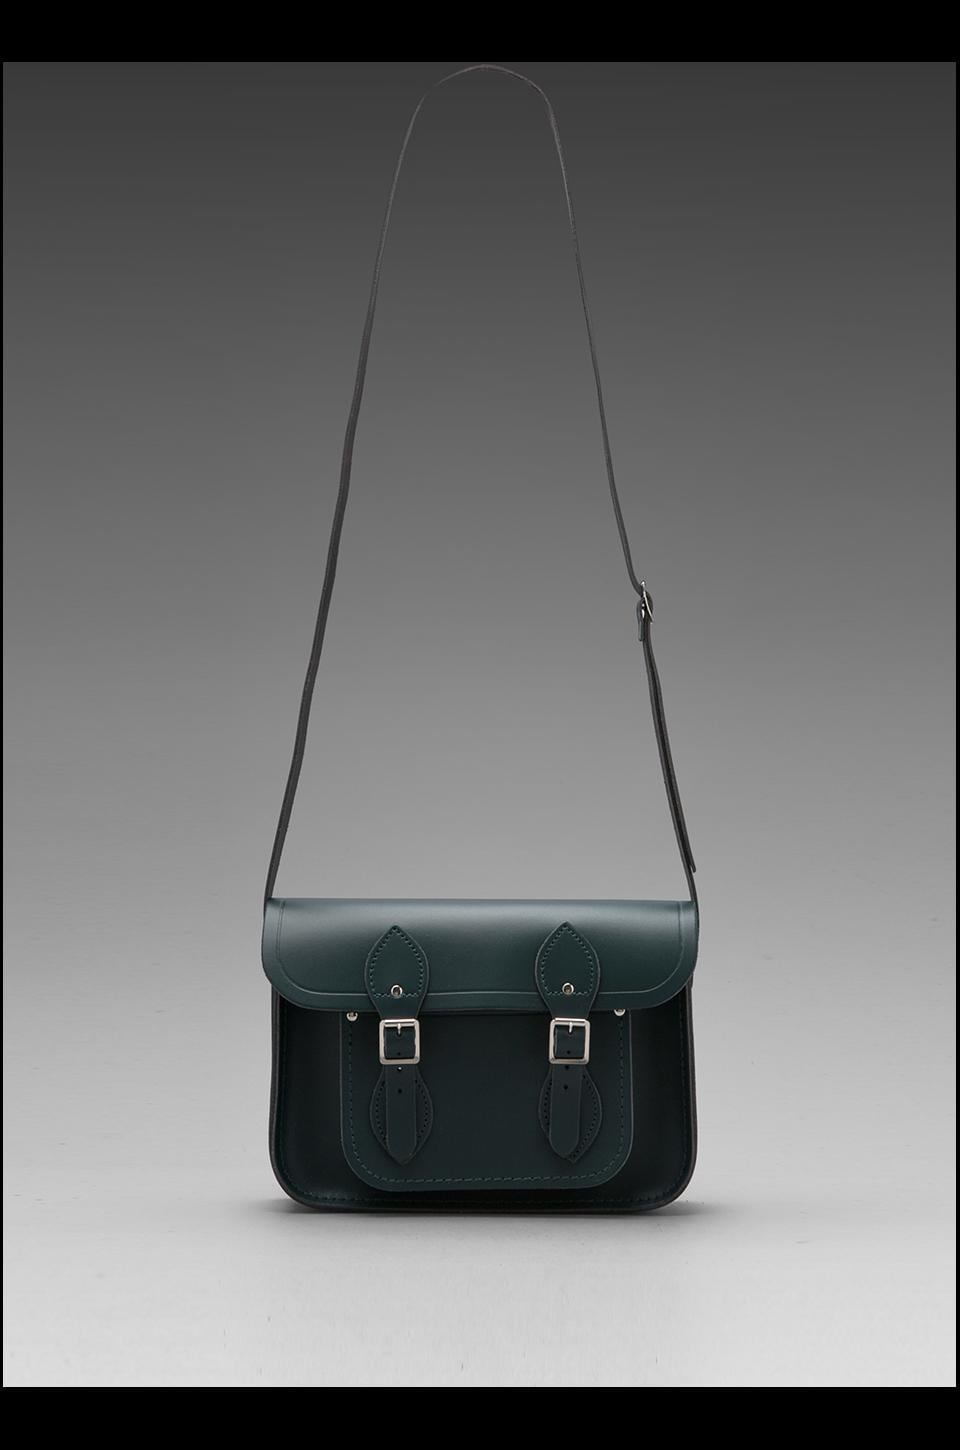 "The Cambridge Satchel Company Core Collection Mini 11"" Satchel in Dark Green"